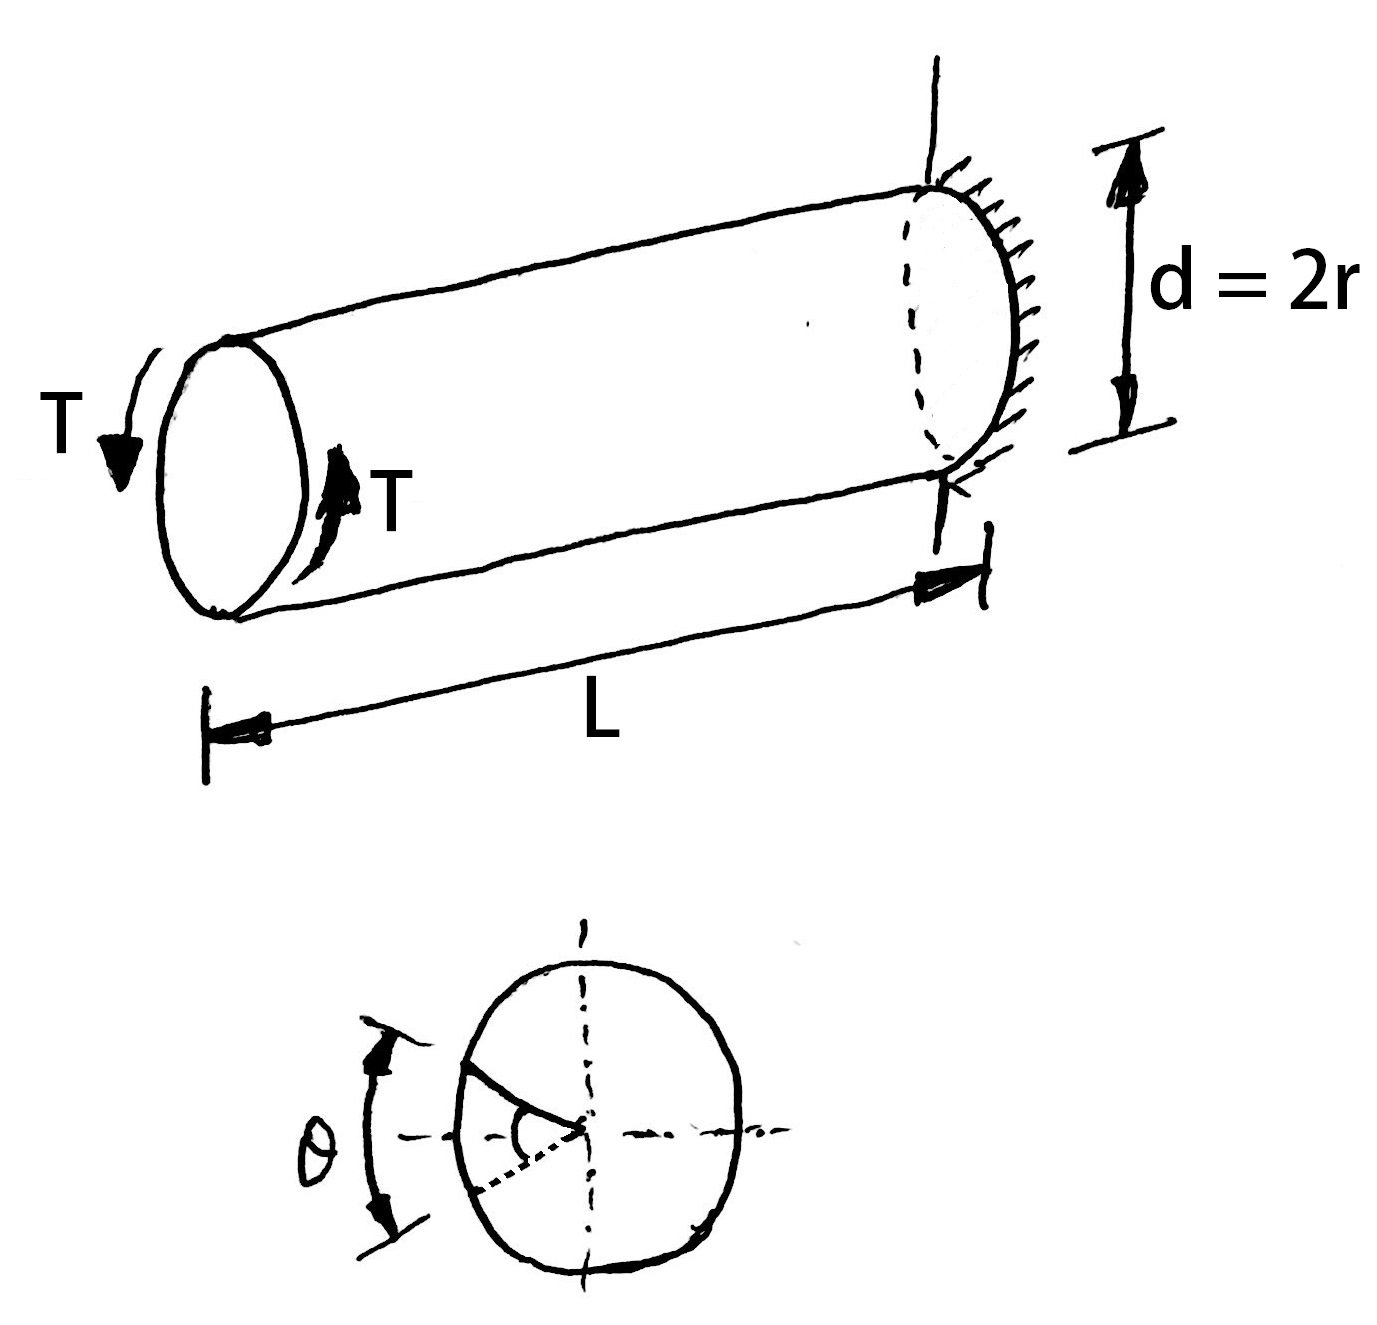 calculate the shaft diameter from the torque